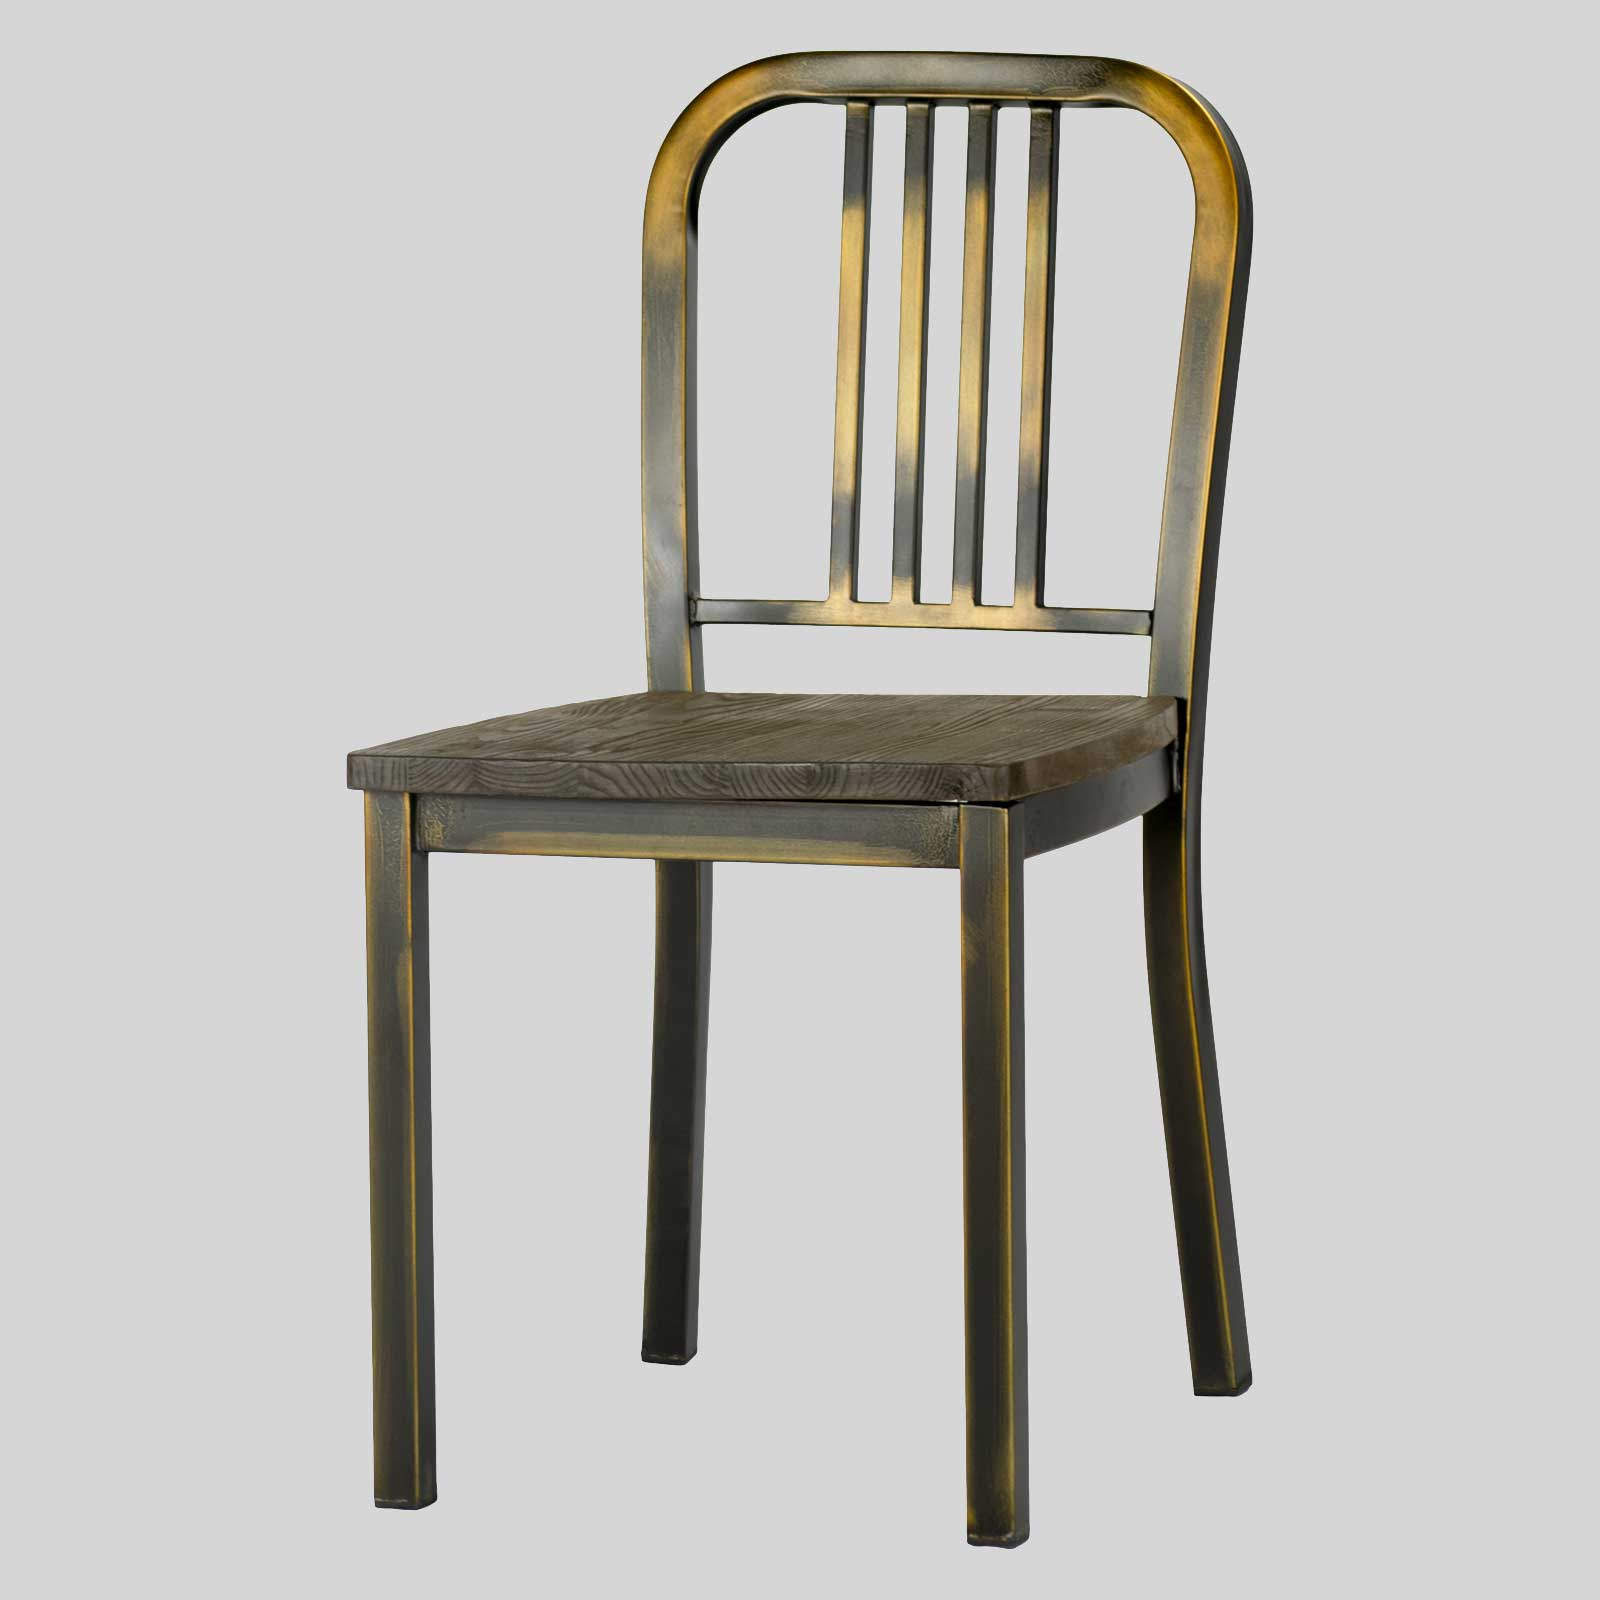 Reproduction Navy Chair Nevada IV Concept Collections